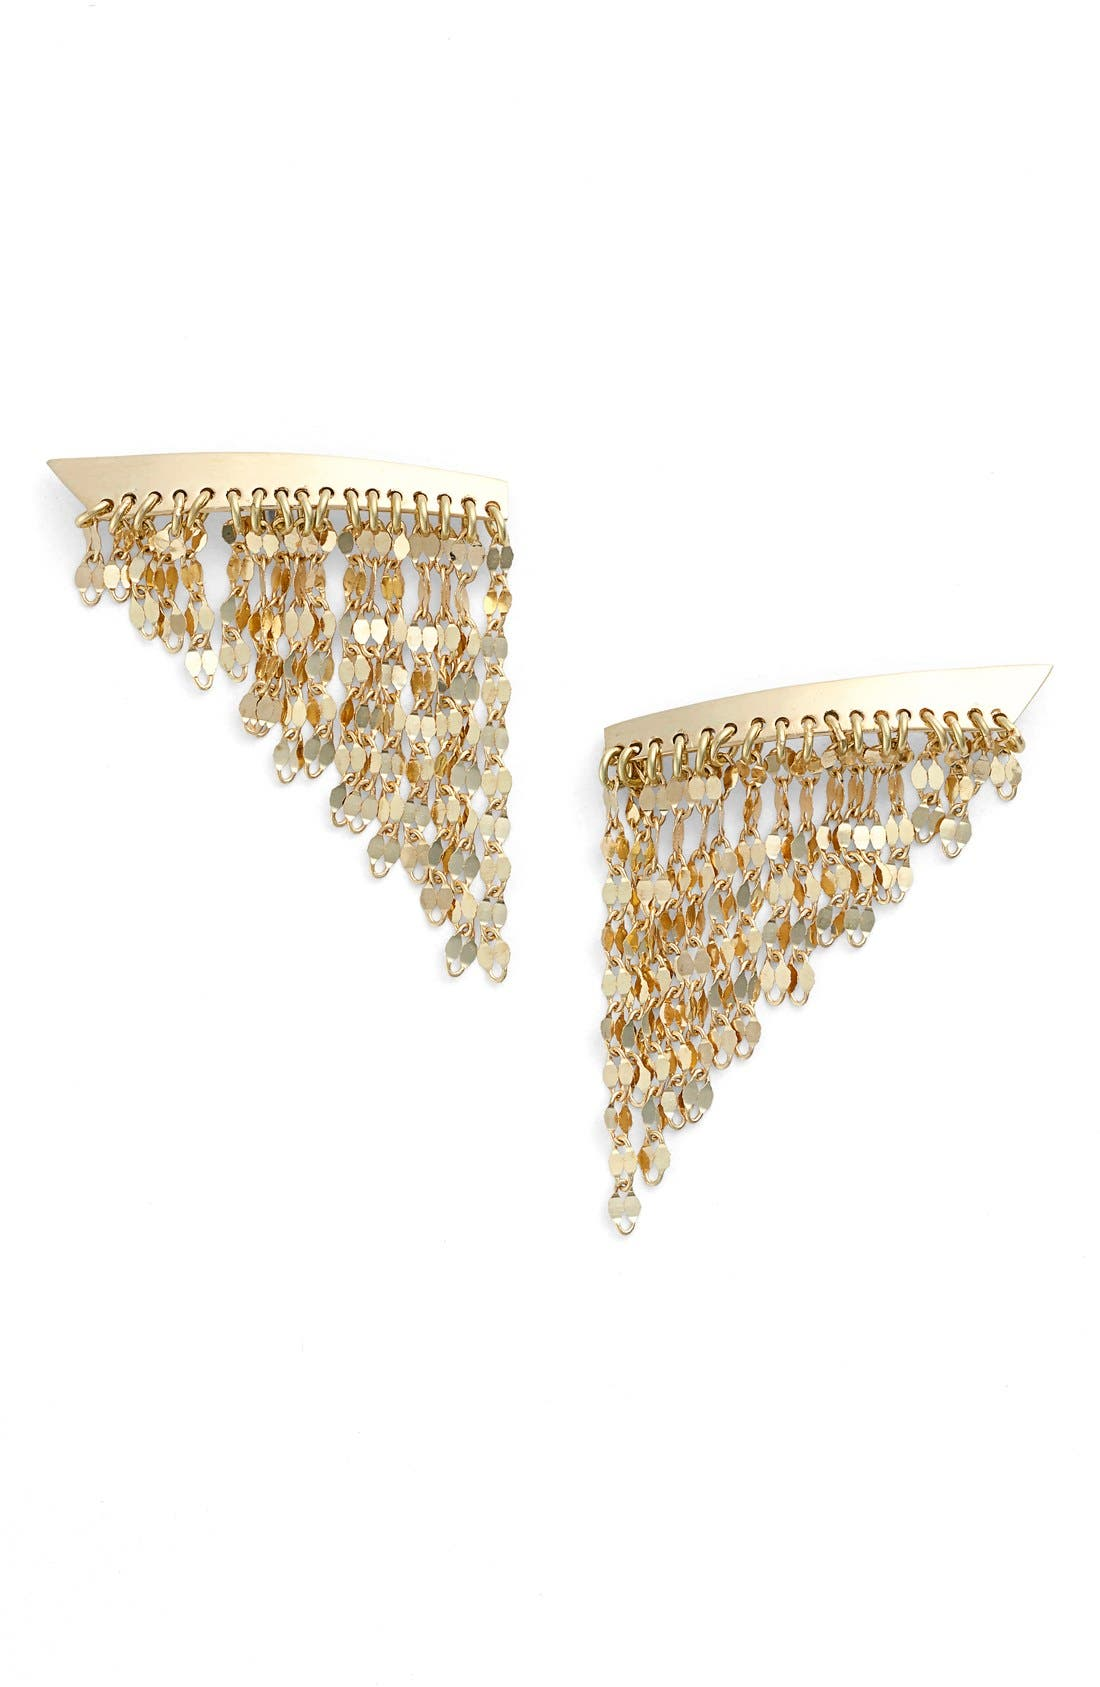 Alternate Image 1 Selected - Lana Jewelry Small Fringe Drop Earrings